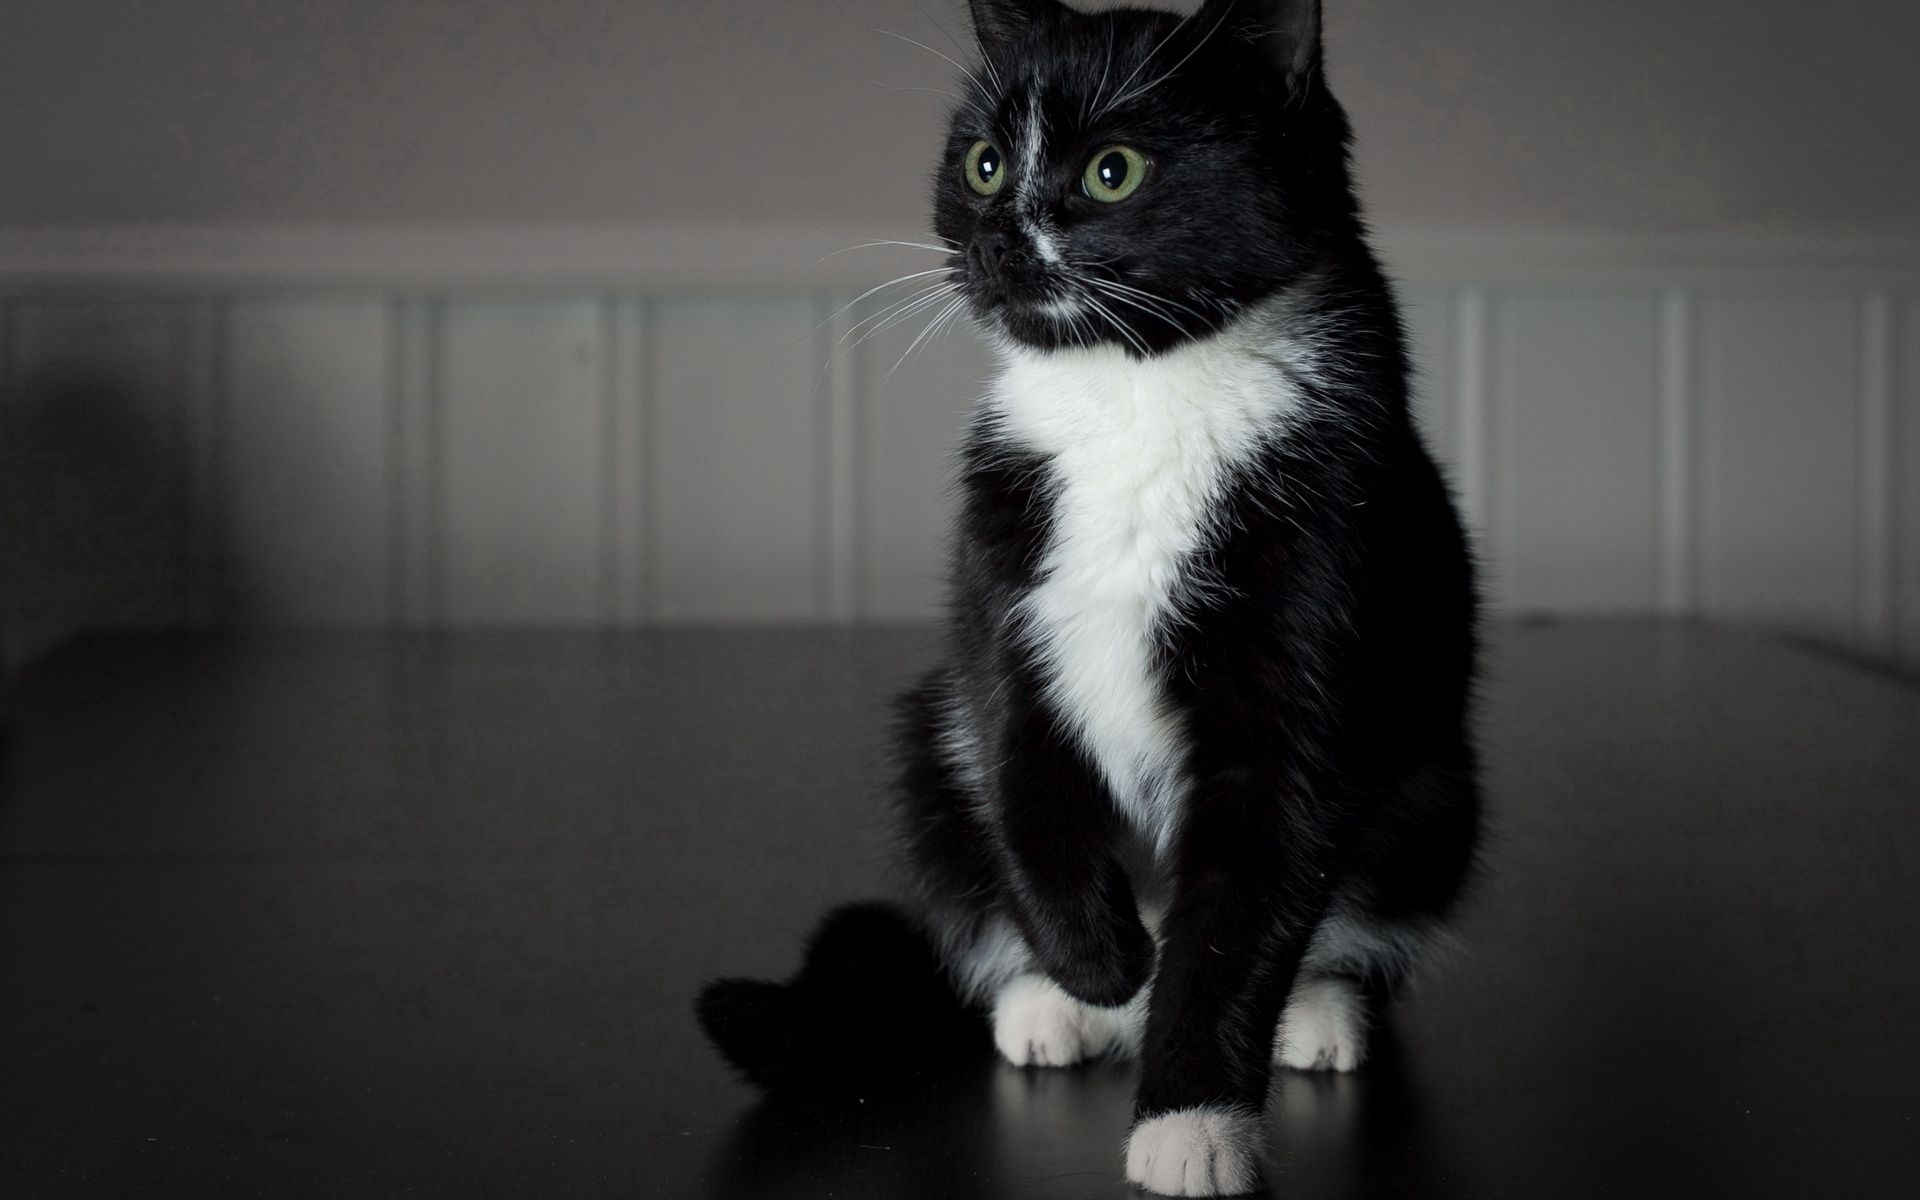 54238 download wallpaper Animals, Black Cat, White Paws, Kid, Tot screensavers and pictures for free